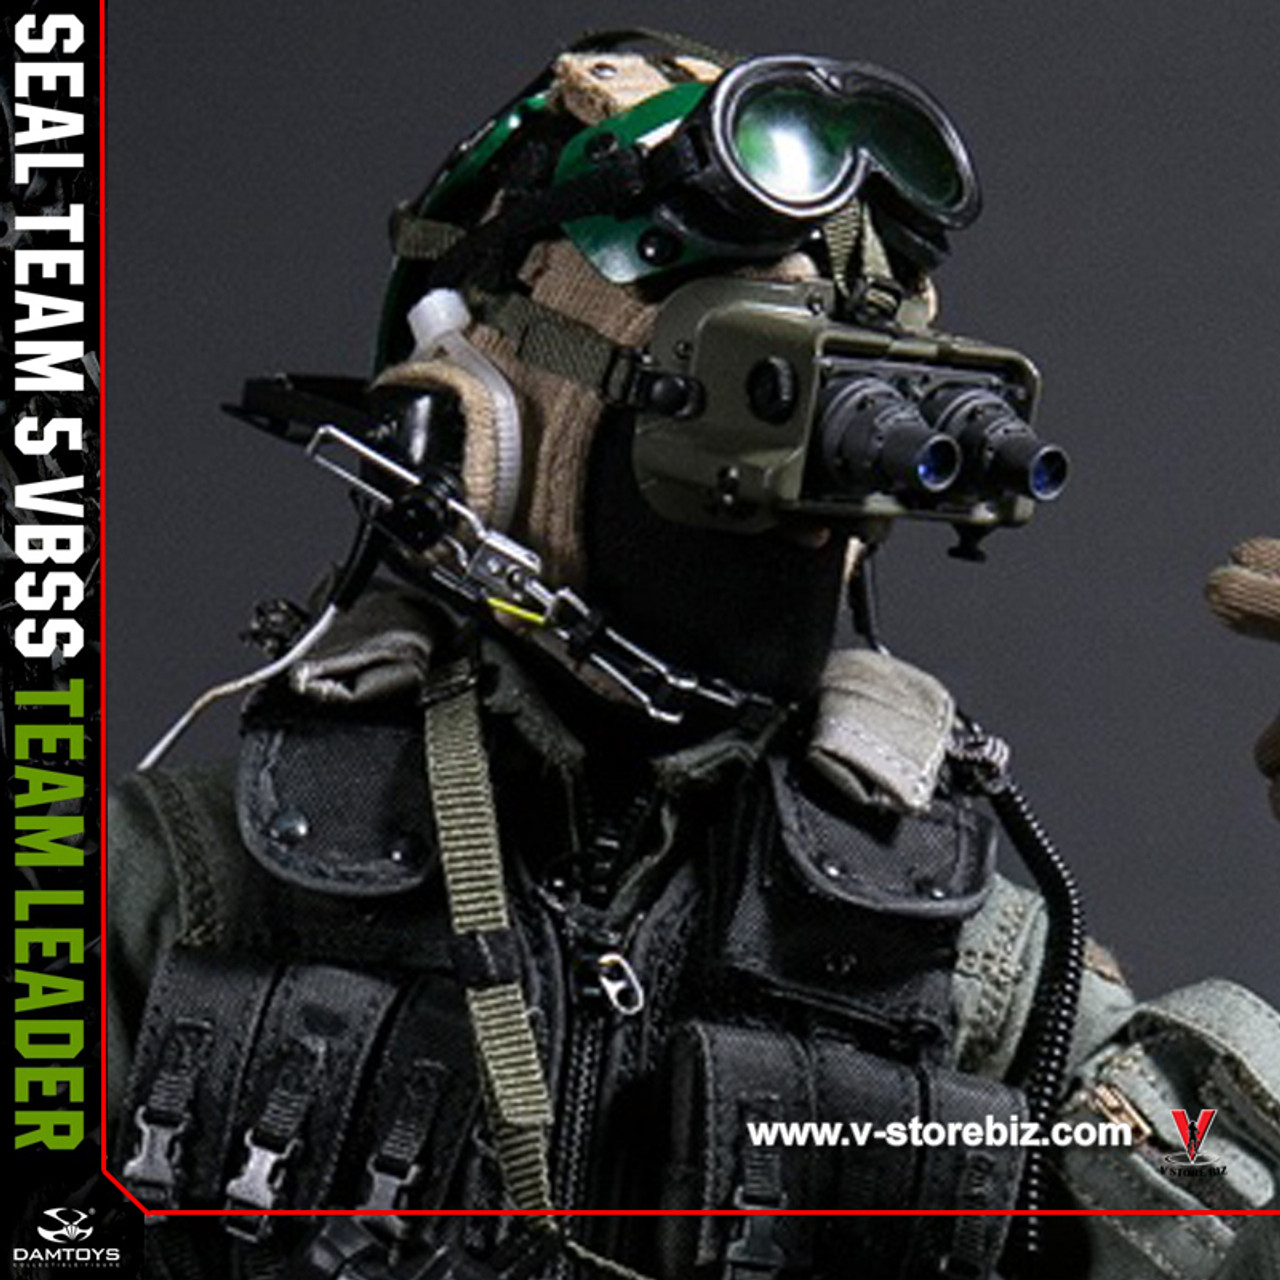 Box Set IN STOCK 1//6 Scale DAMTOYS 78046 SEAL TEAM 5 VBSS COMMANDER